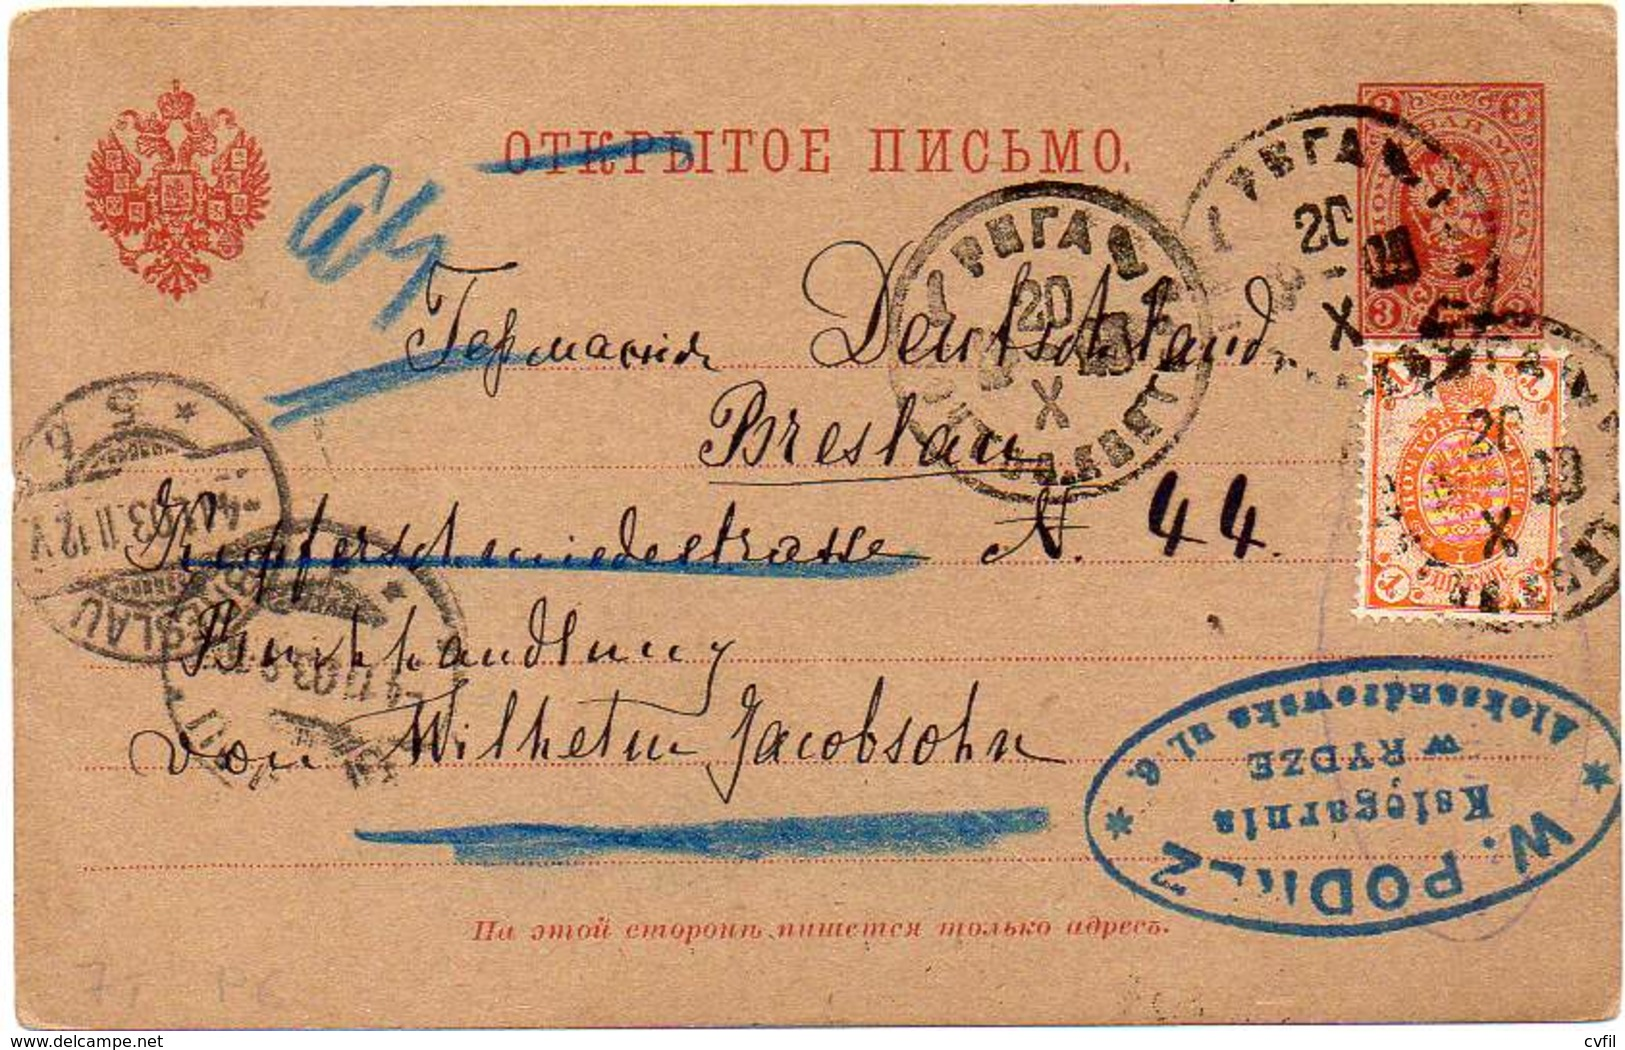 RUSSIA 1903 - Entire Postal Card Of 3 Kopecs With Additional Postage, From Riga To Breslau, Germany - Briefe U. Dokumente